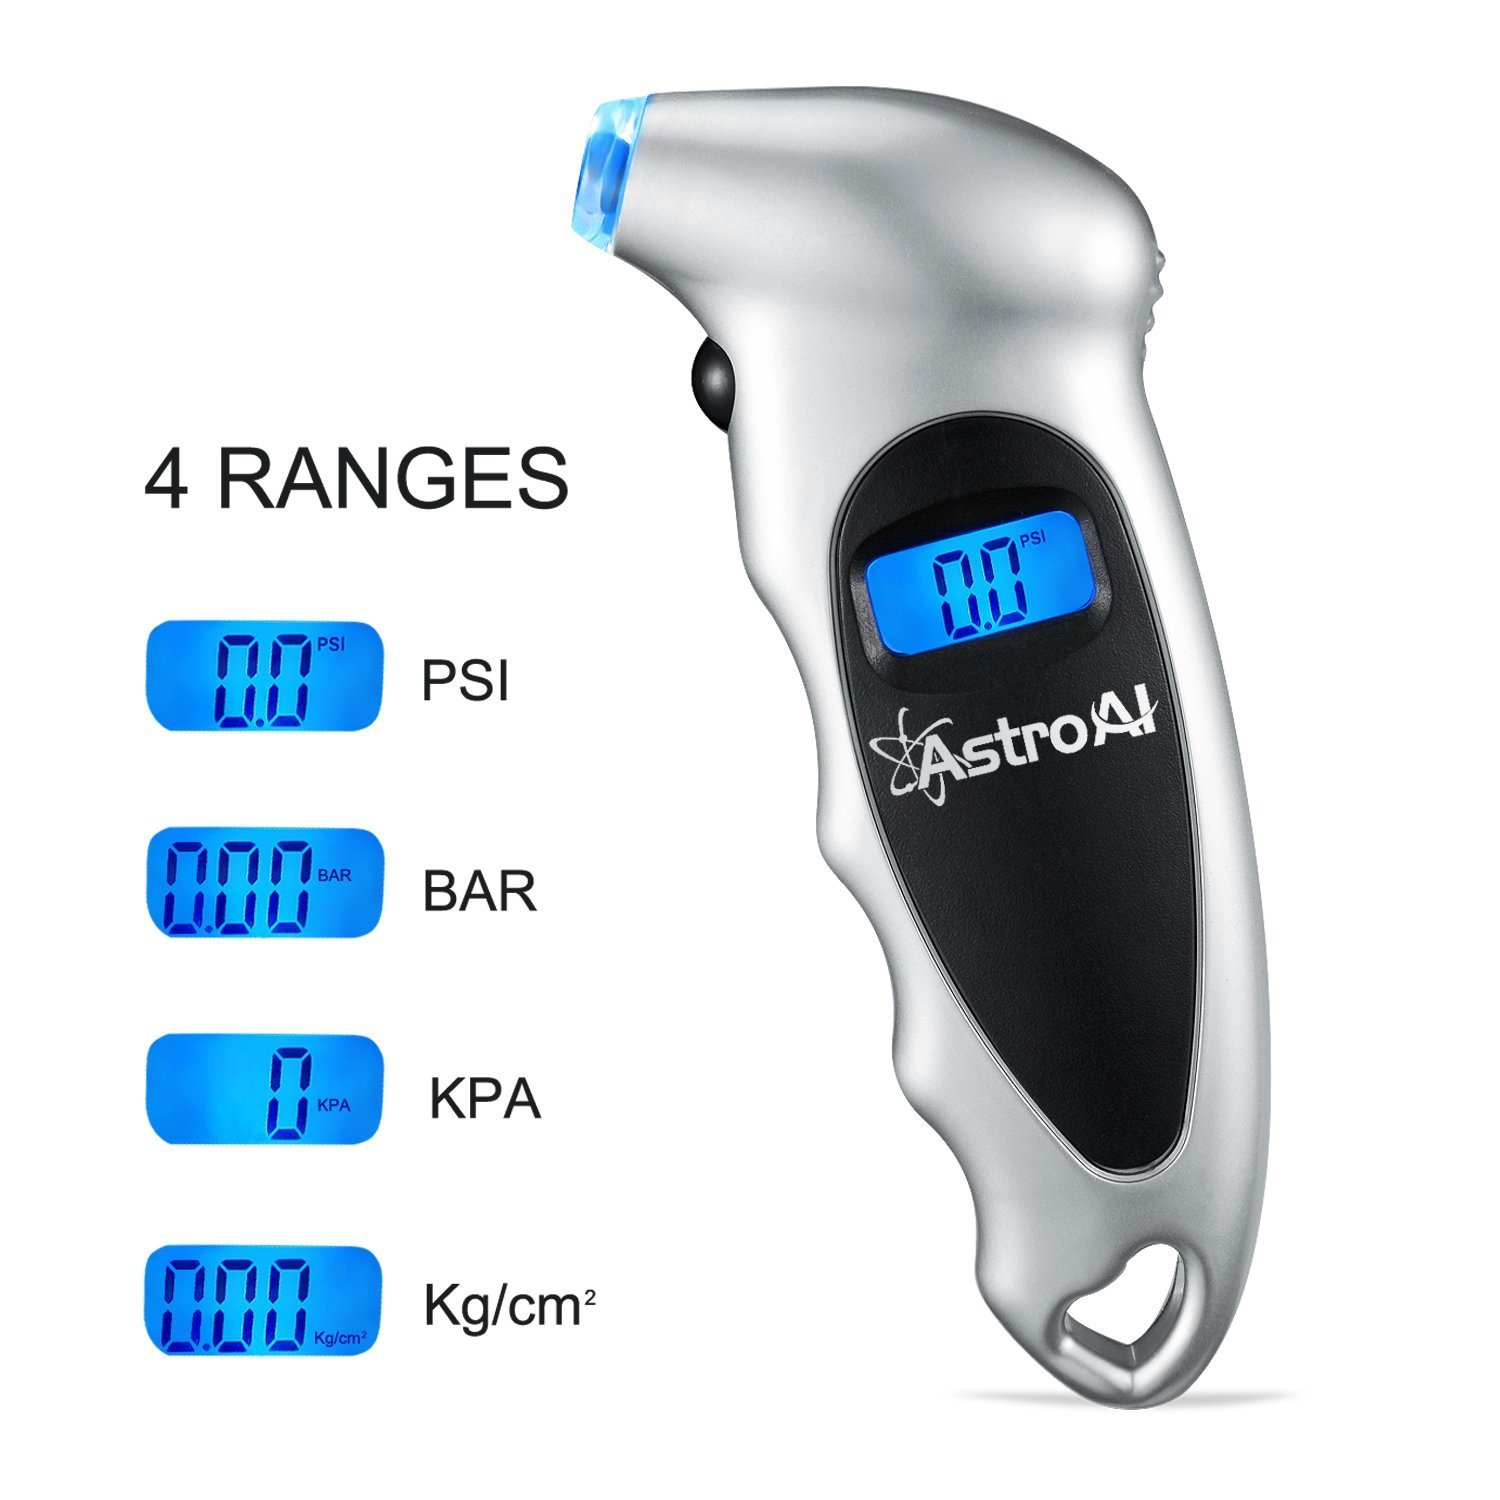 AstroAI Case of 100, Digital Tire Pressure Gauge 150 PSI 4 Settings for Car Truck Bicycle with Backlit LCD and Non-Slip Grip, Silver by AstroAI (Image #3)